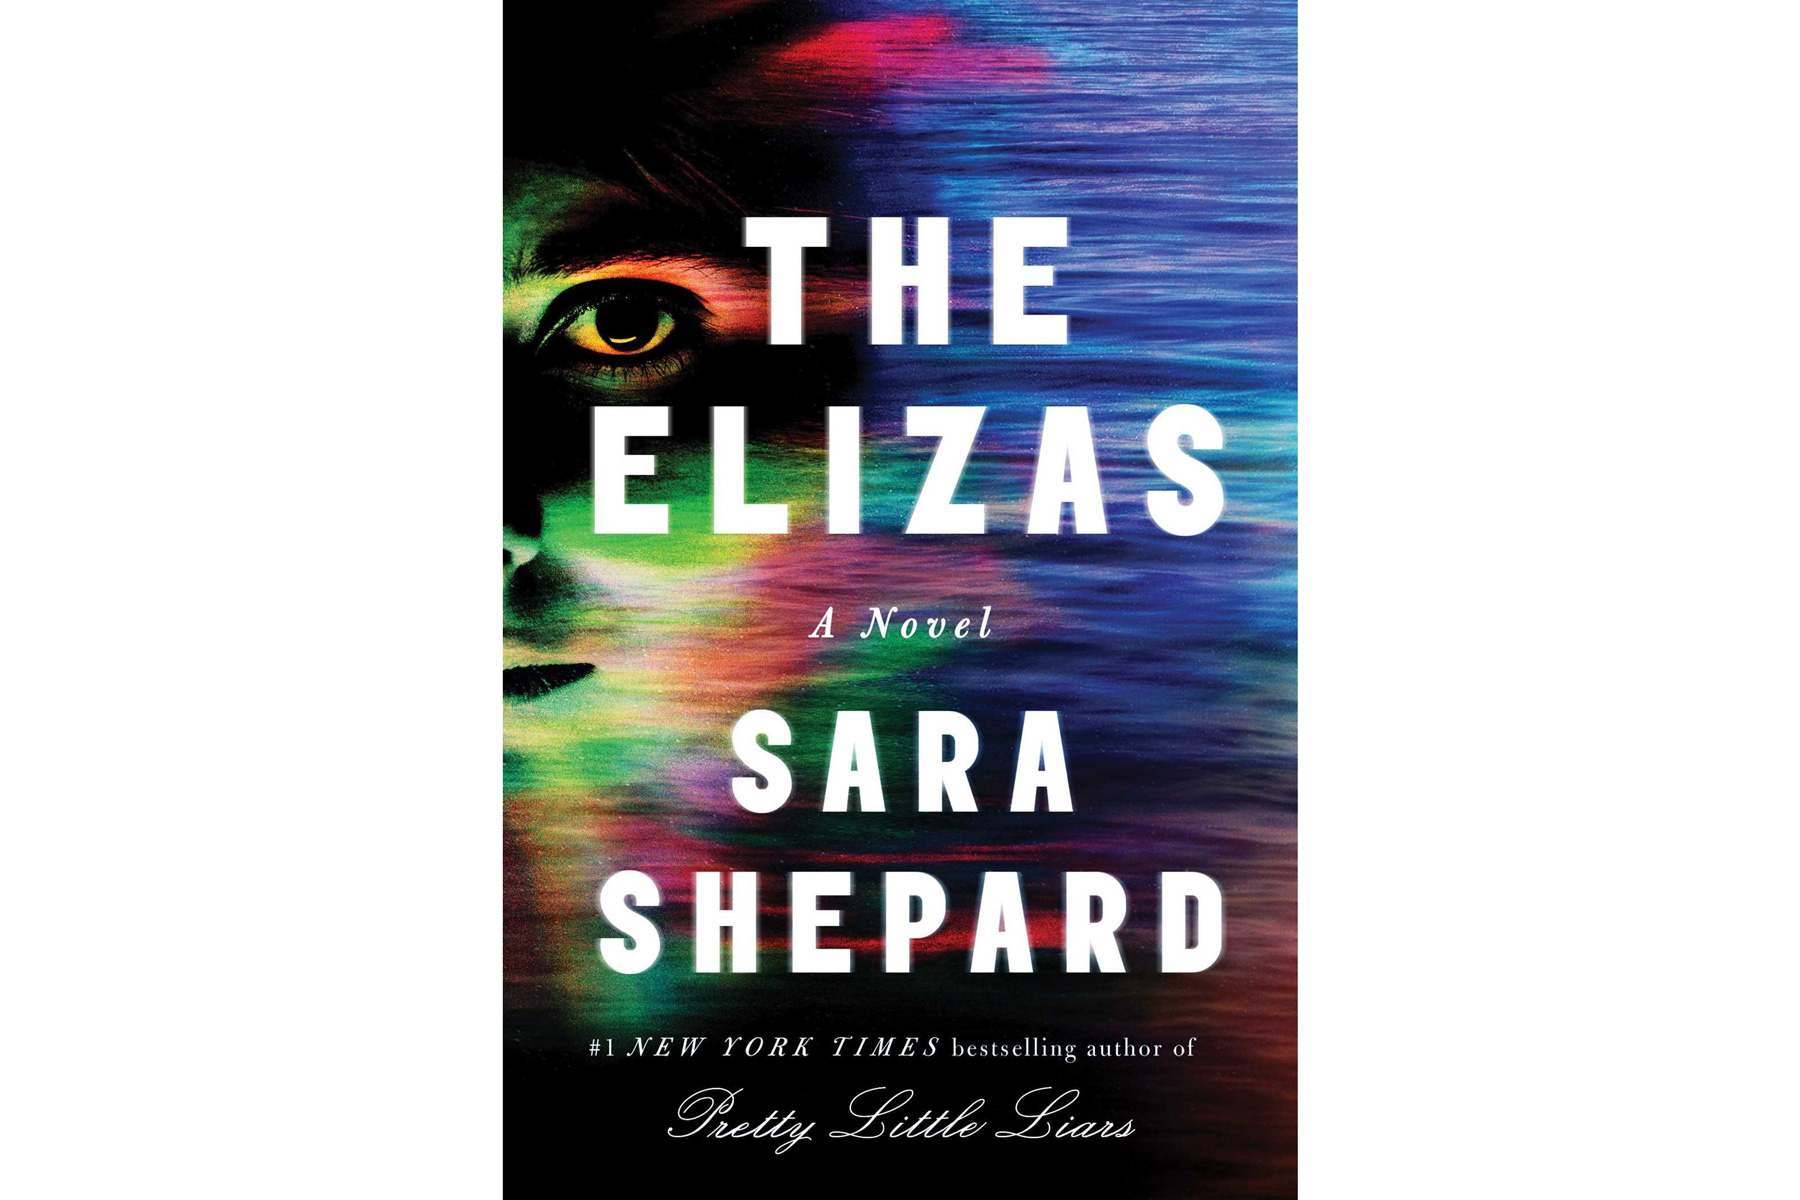 The Elizas, by Sara Shepard